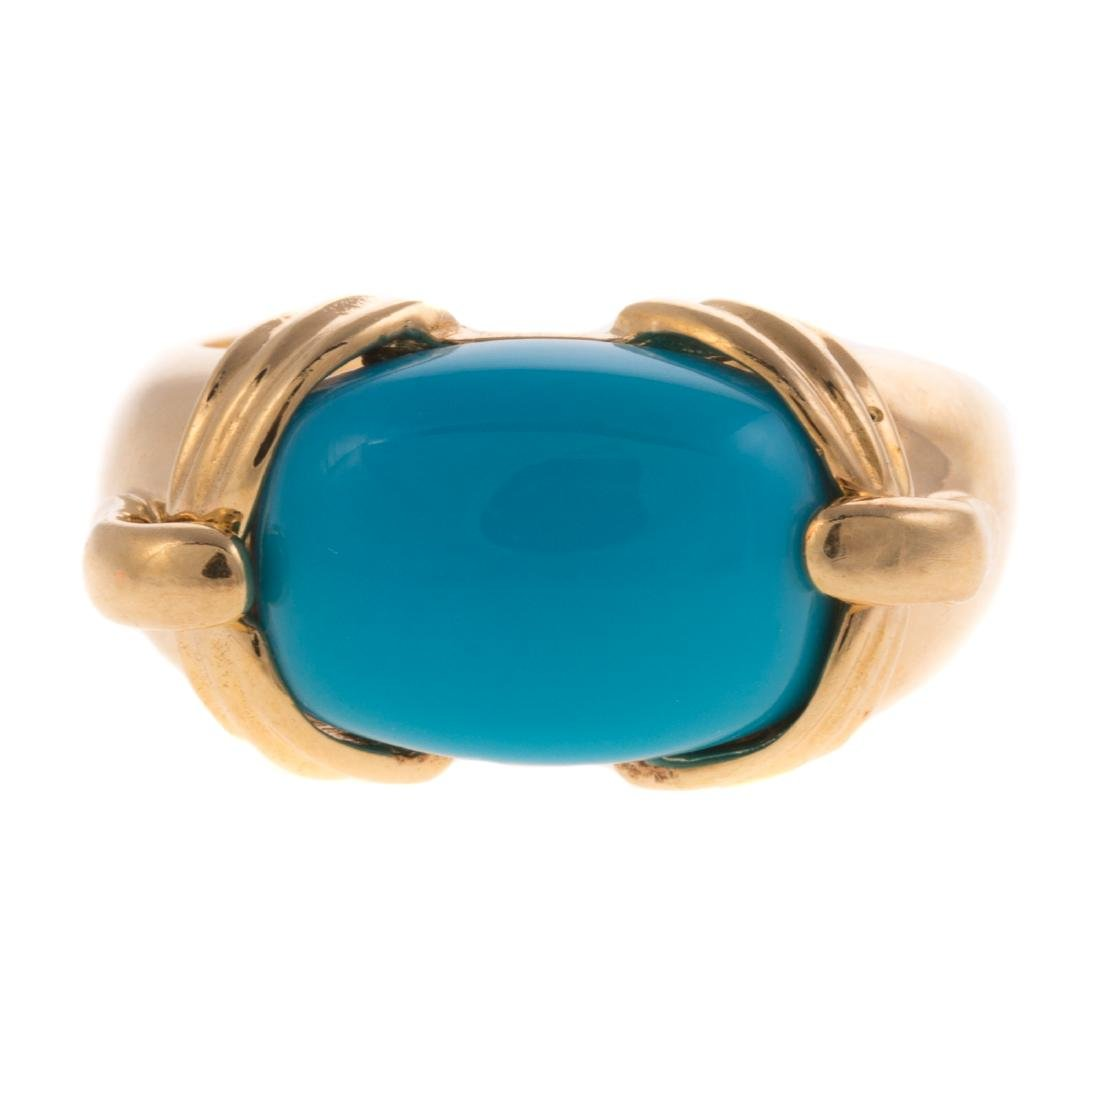 A Lady's Sleeping Beauty Turquoise Ring in 18K